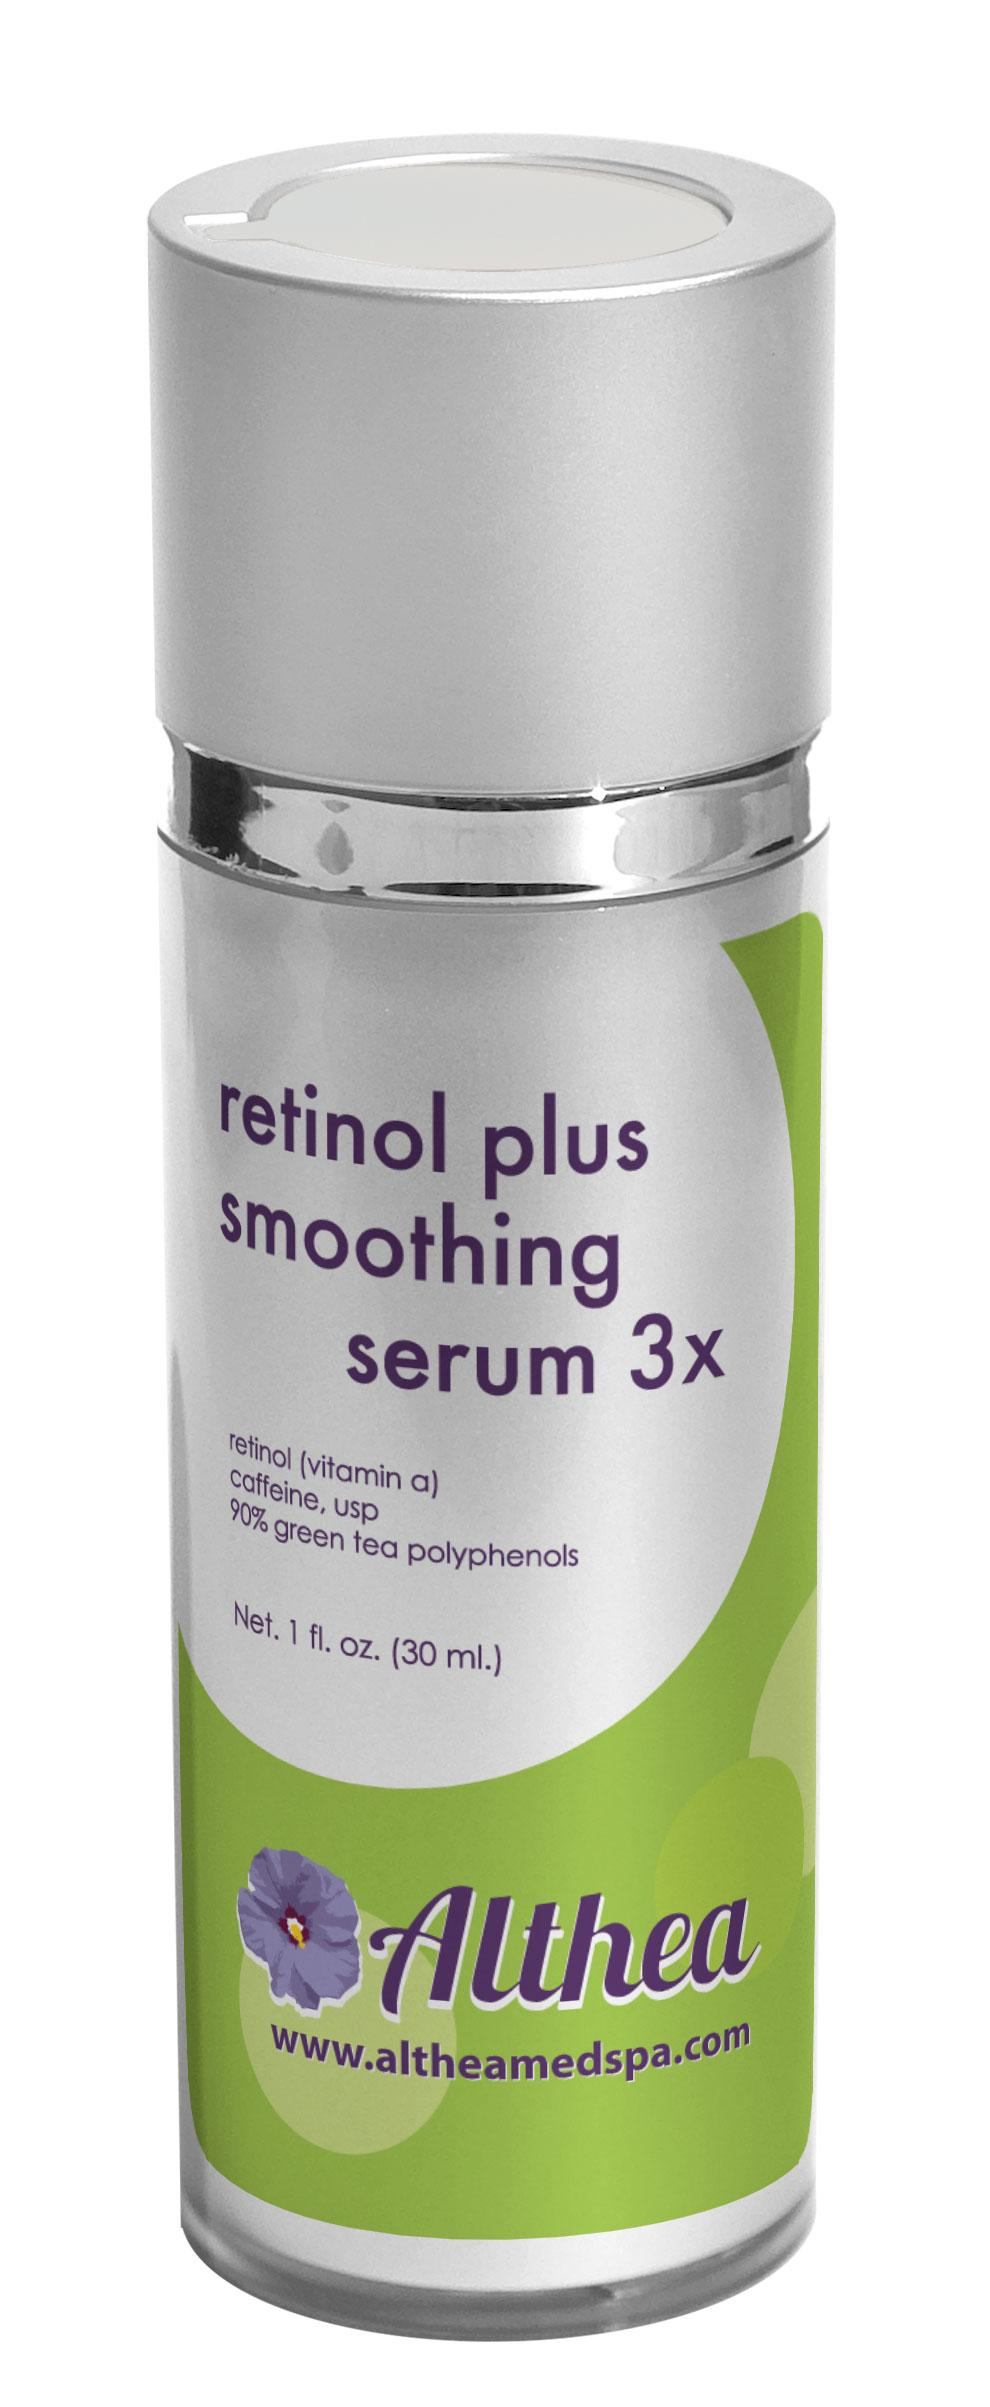 Retinol Plus Smoothing Serum 3x